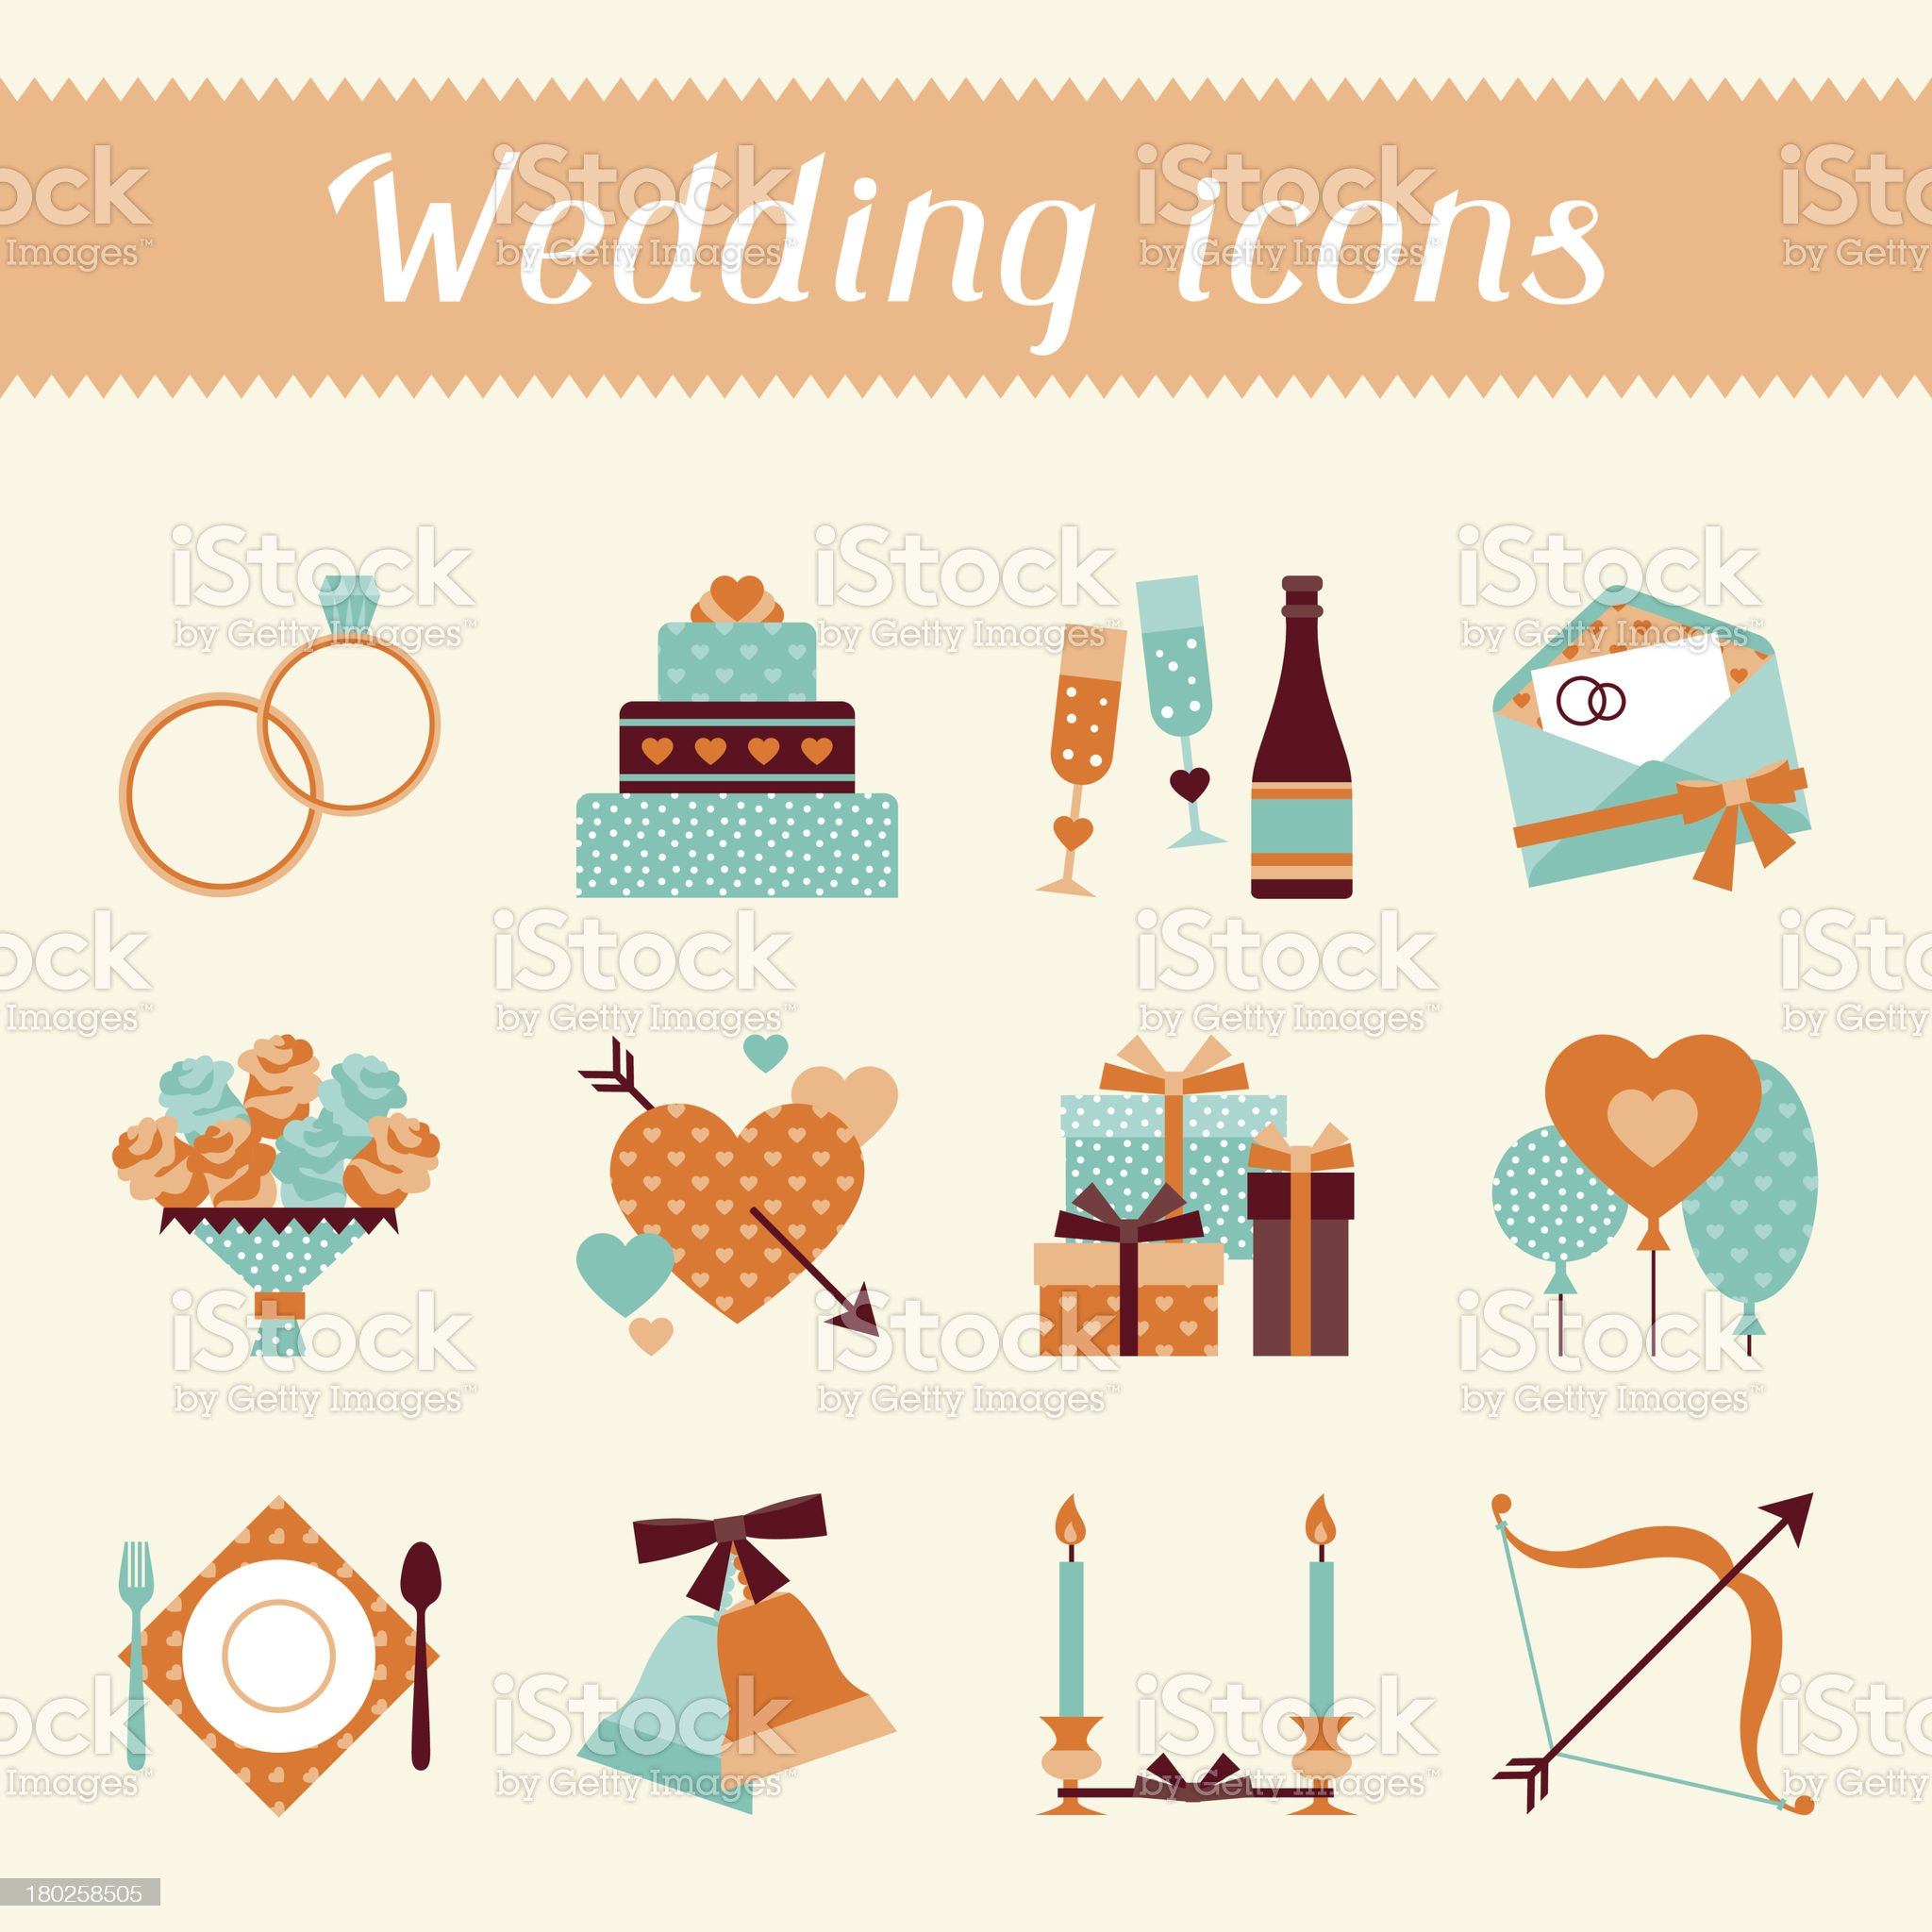 Set of retro wedding icons and design elements. royalty-free stock vector art